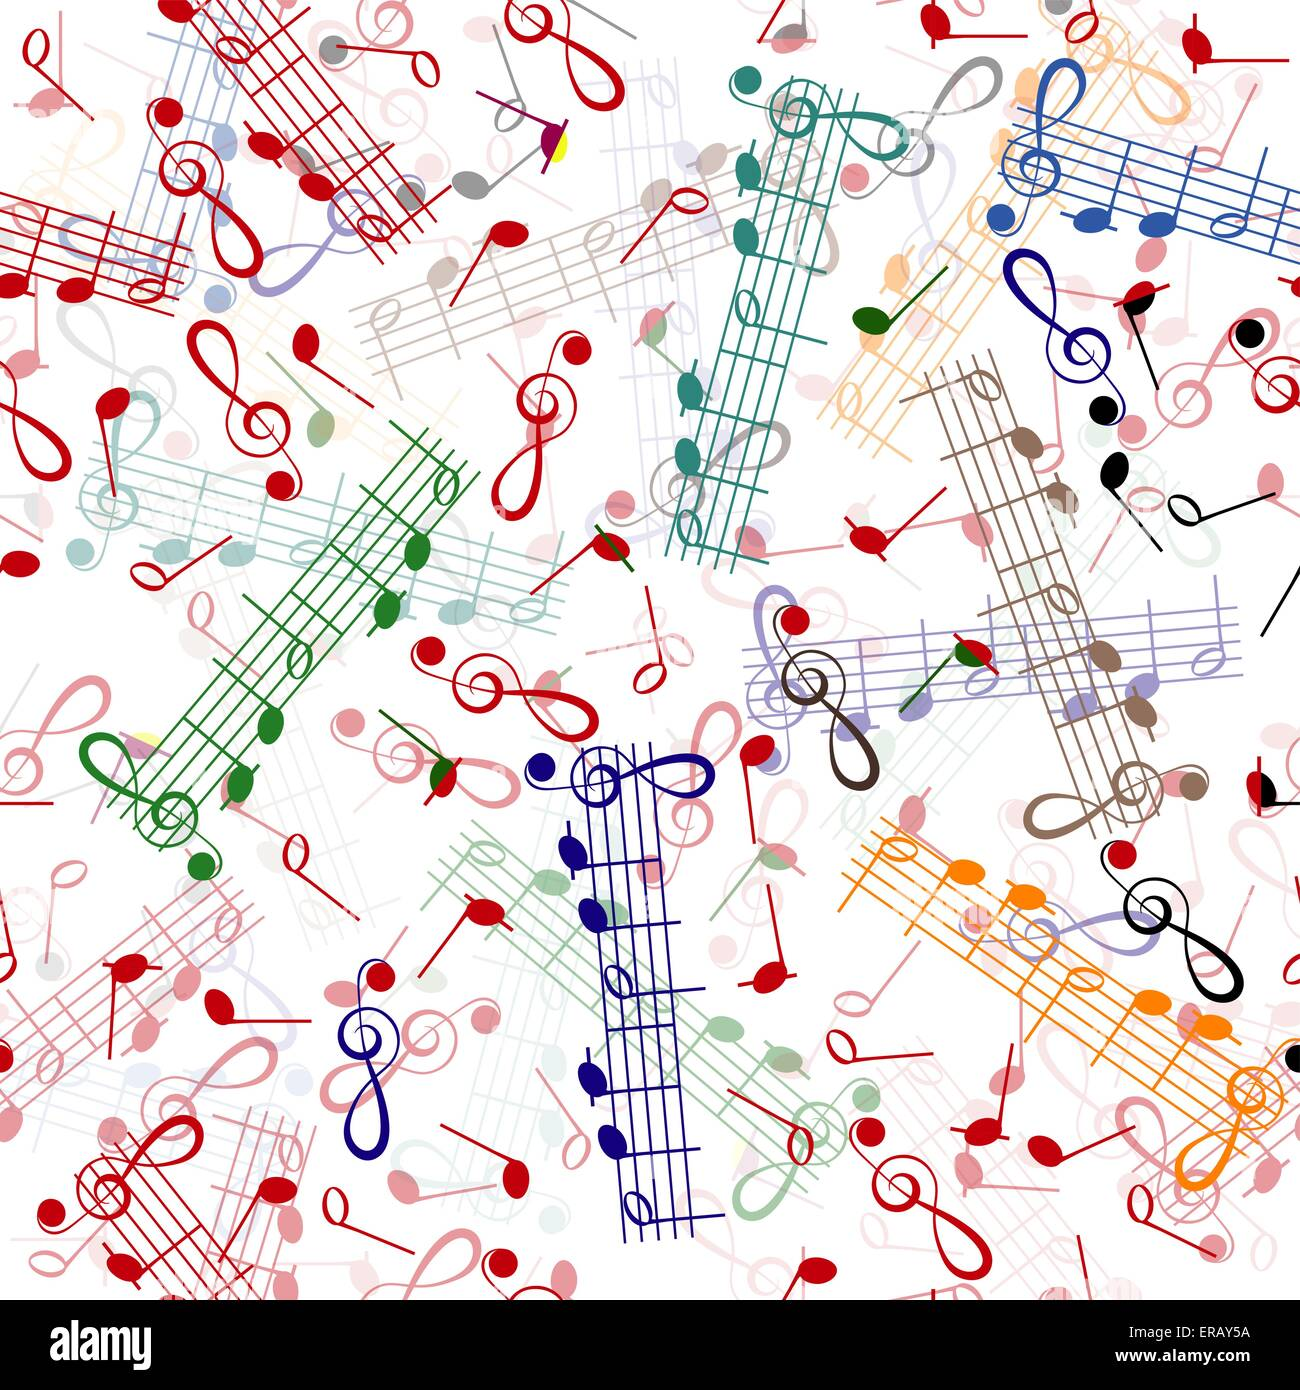 music notation repeating pattern on a white background - Stock Image